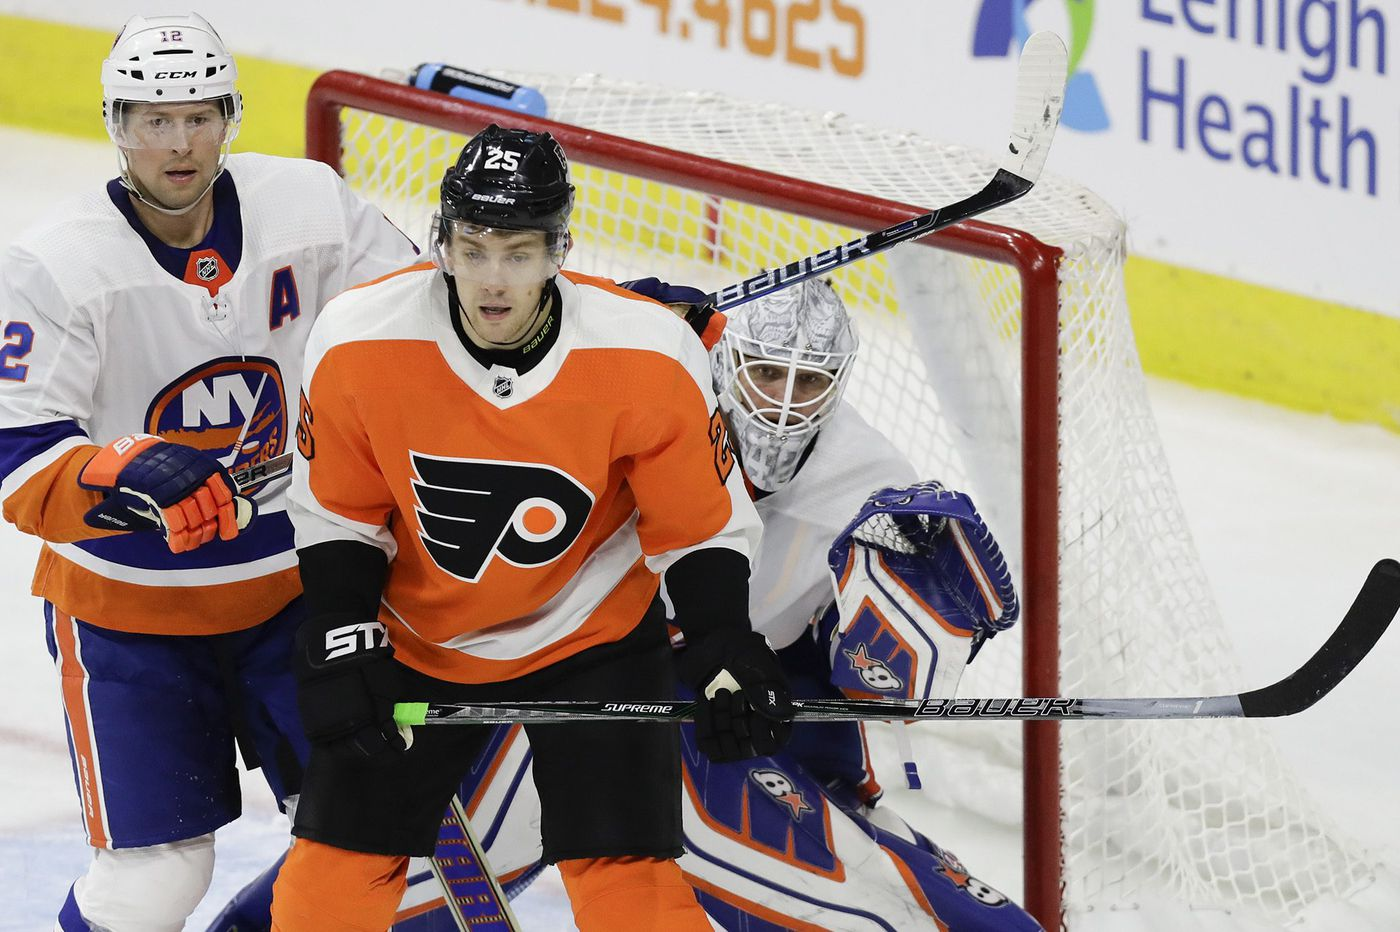 Flyers position preview: Power play looks improved, but penalty kill has questions